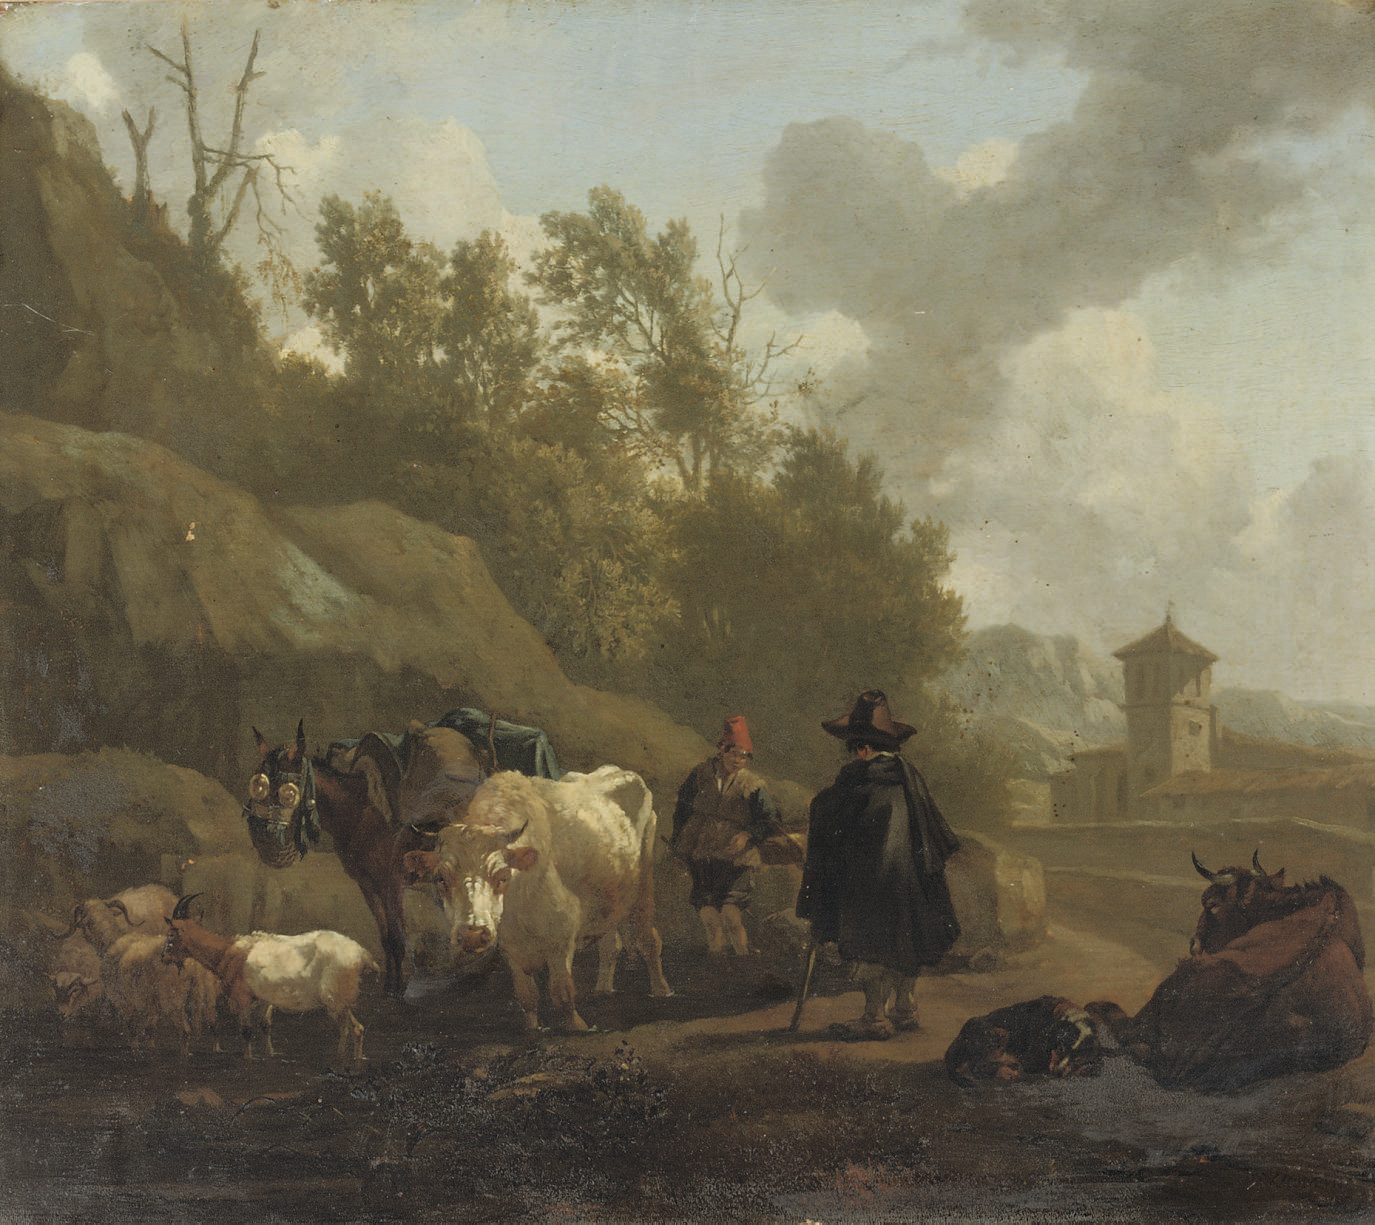 A cowherd and cattle in an Italianate landscape